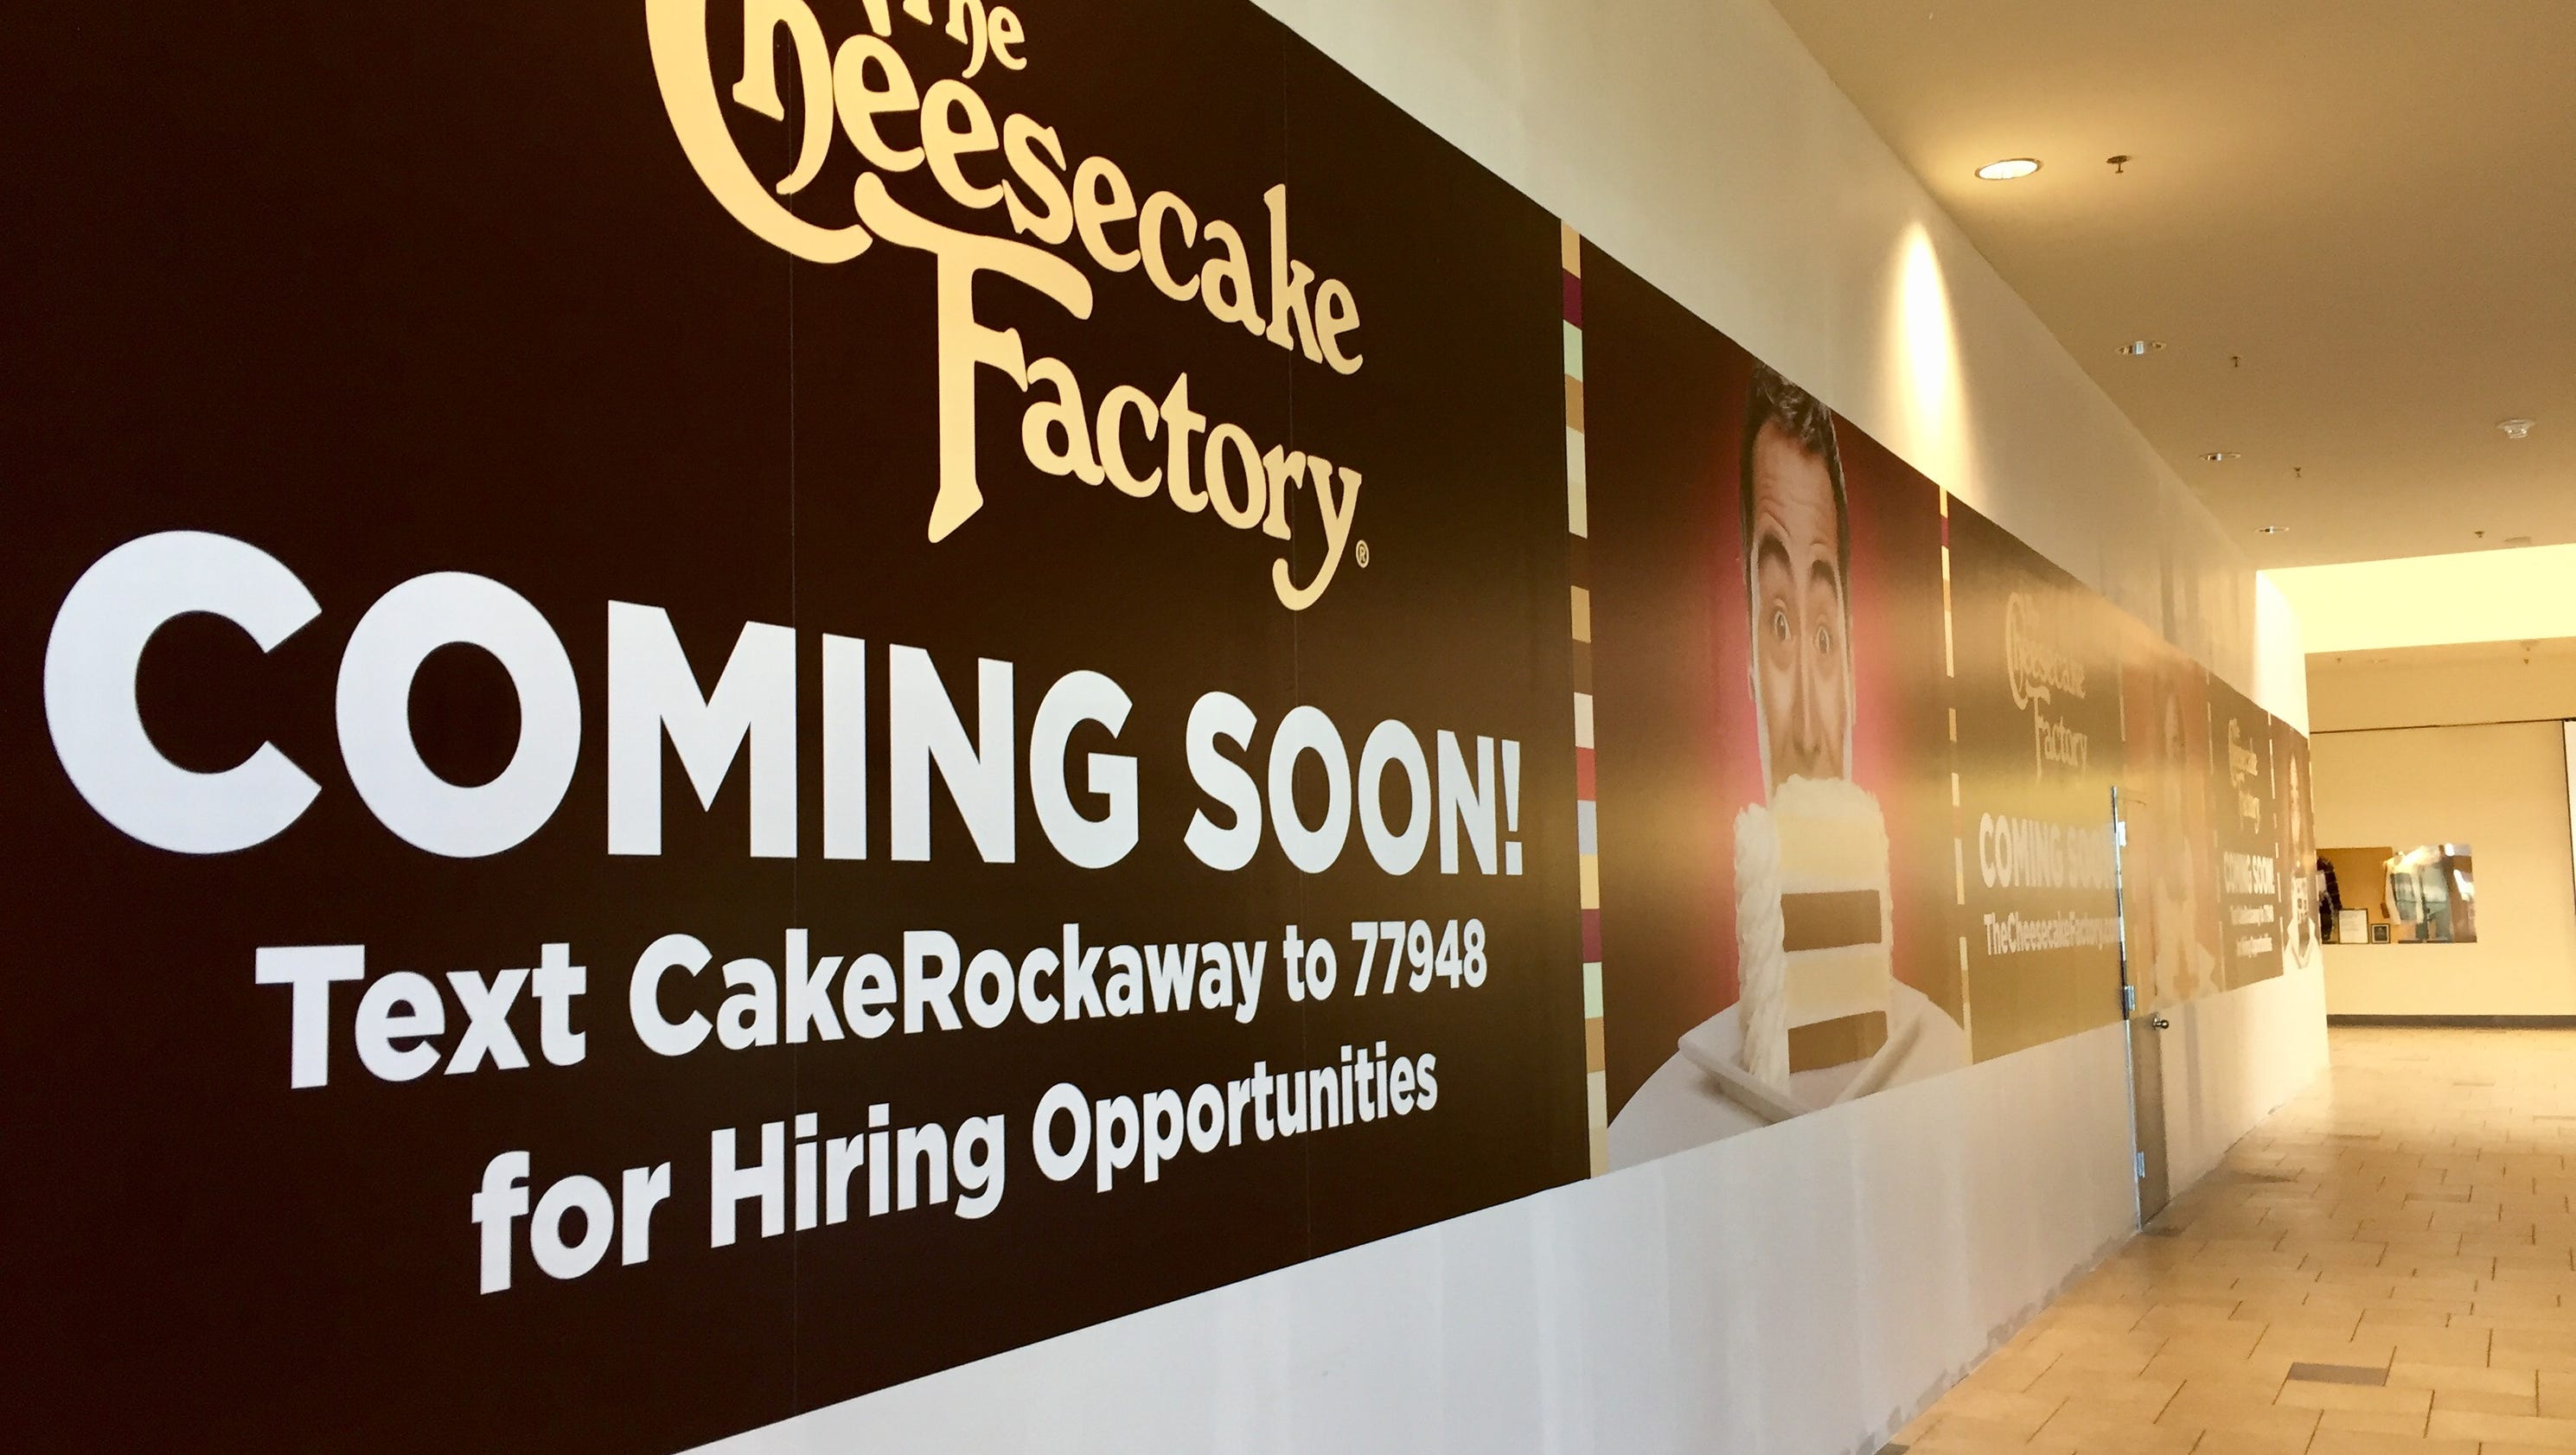 cheesecake factory ing to rockaway townsquare